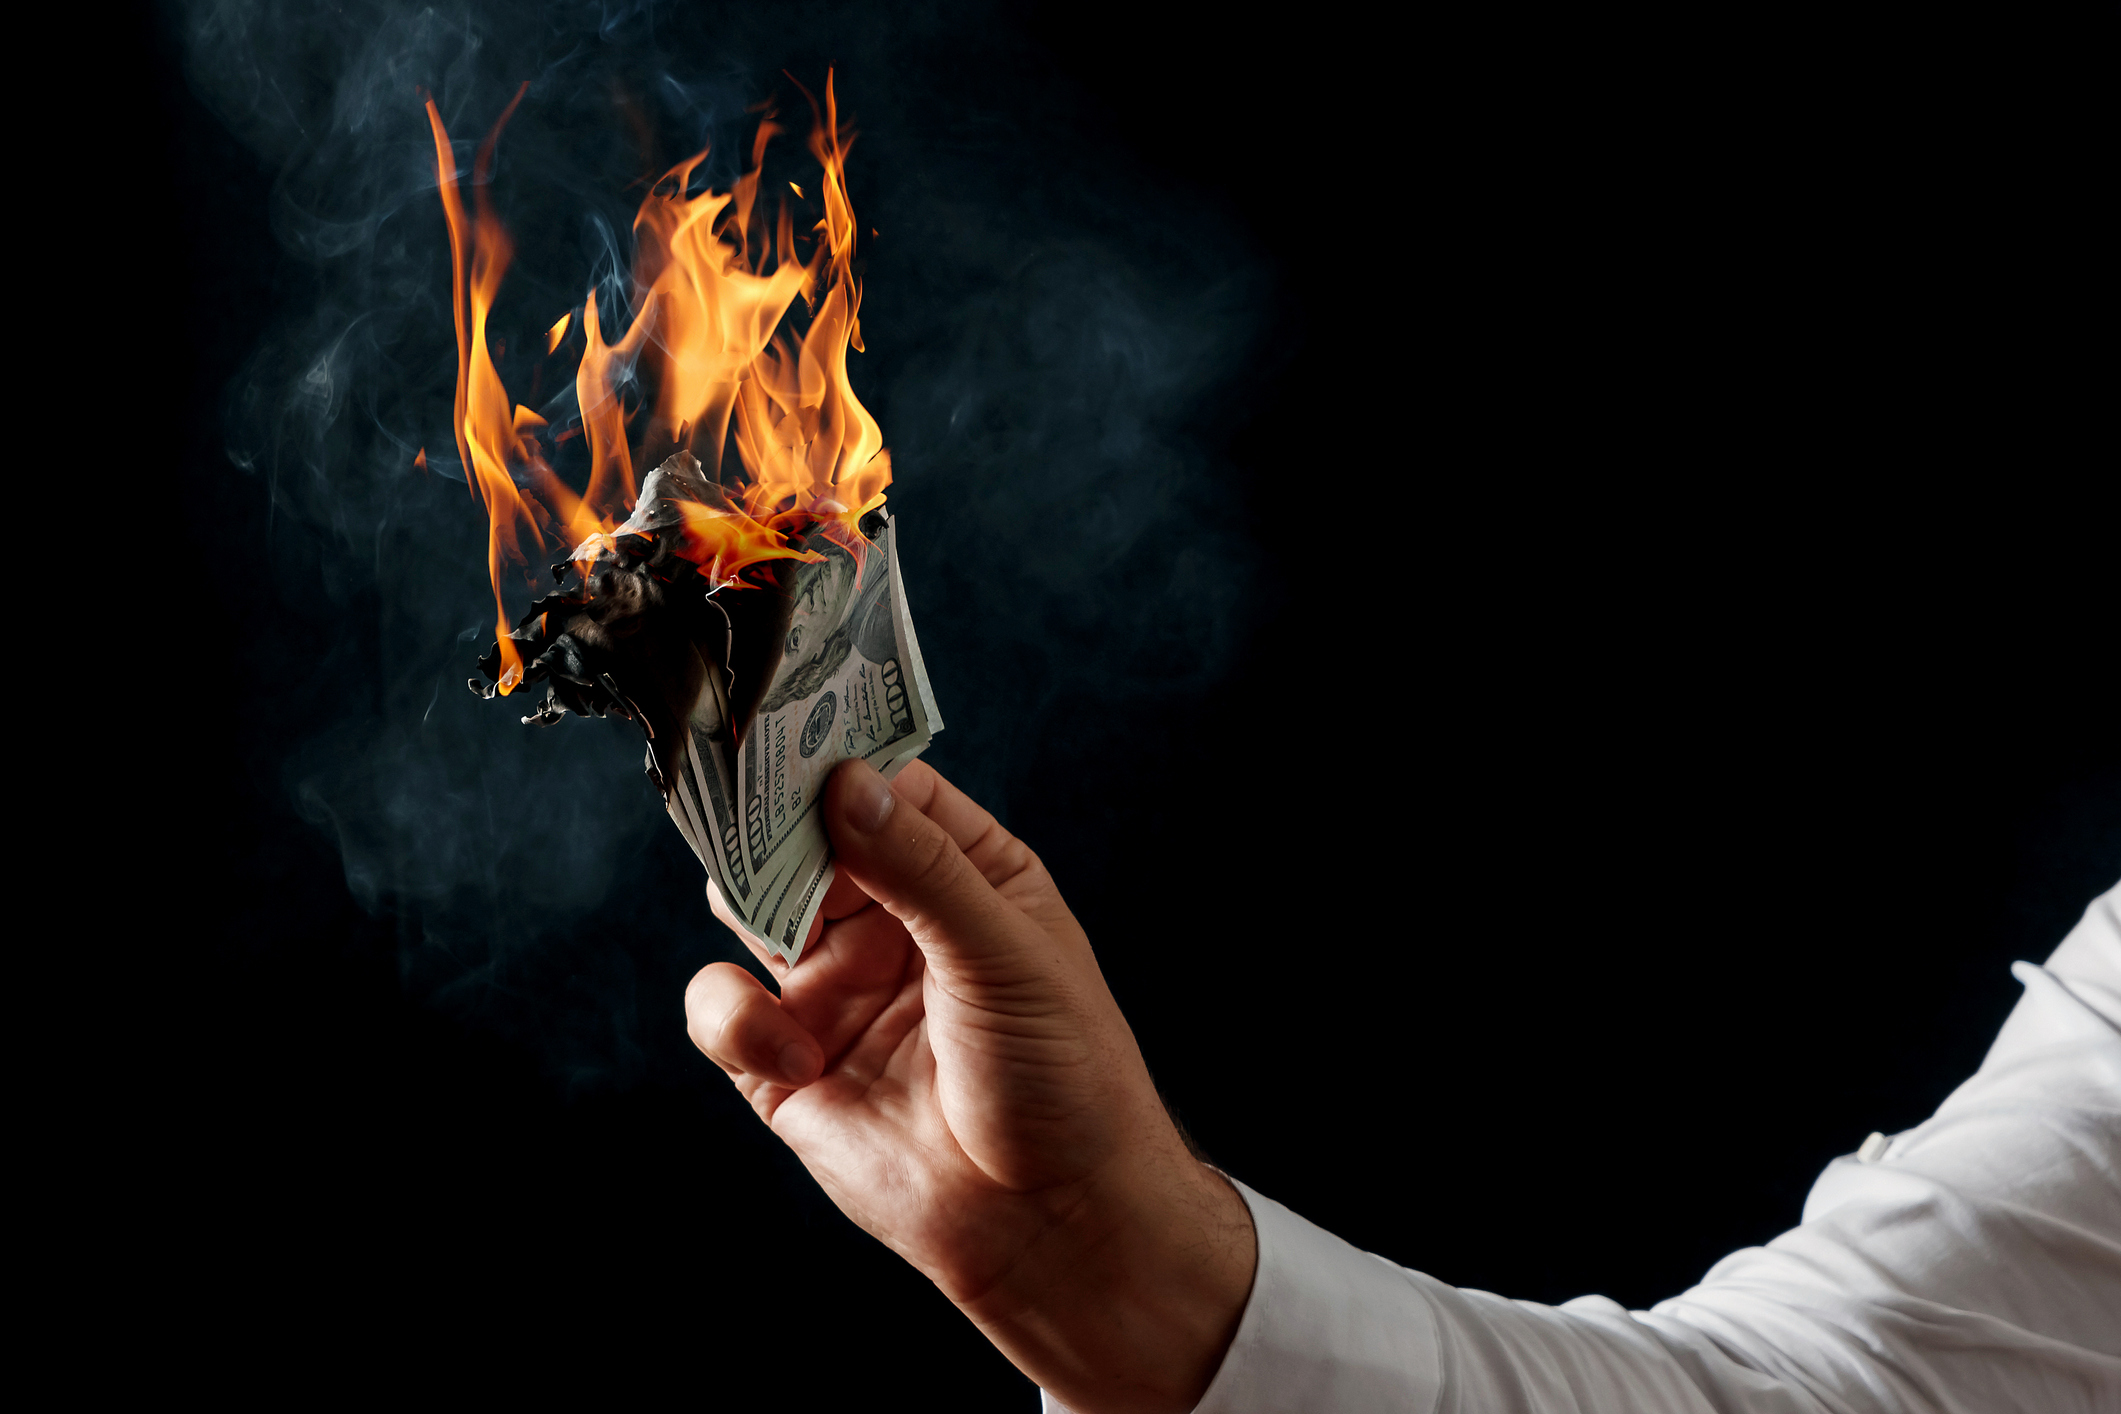 Hand holding a wad of 100-dollar bills set ablaze.